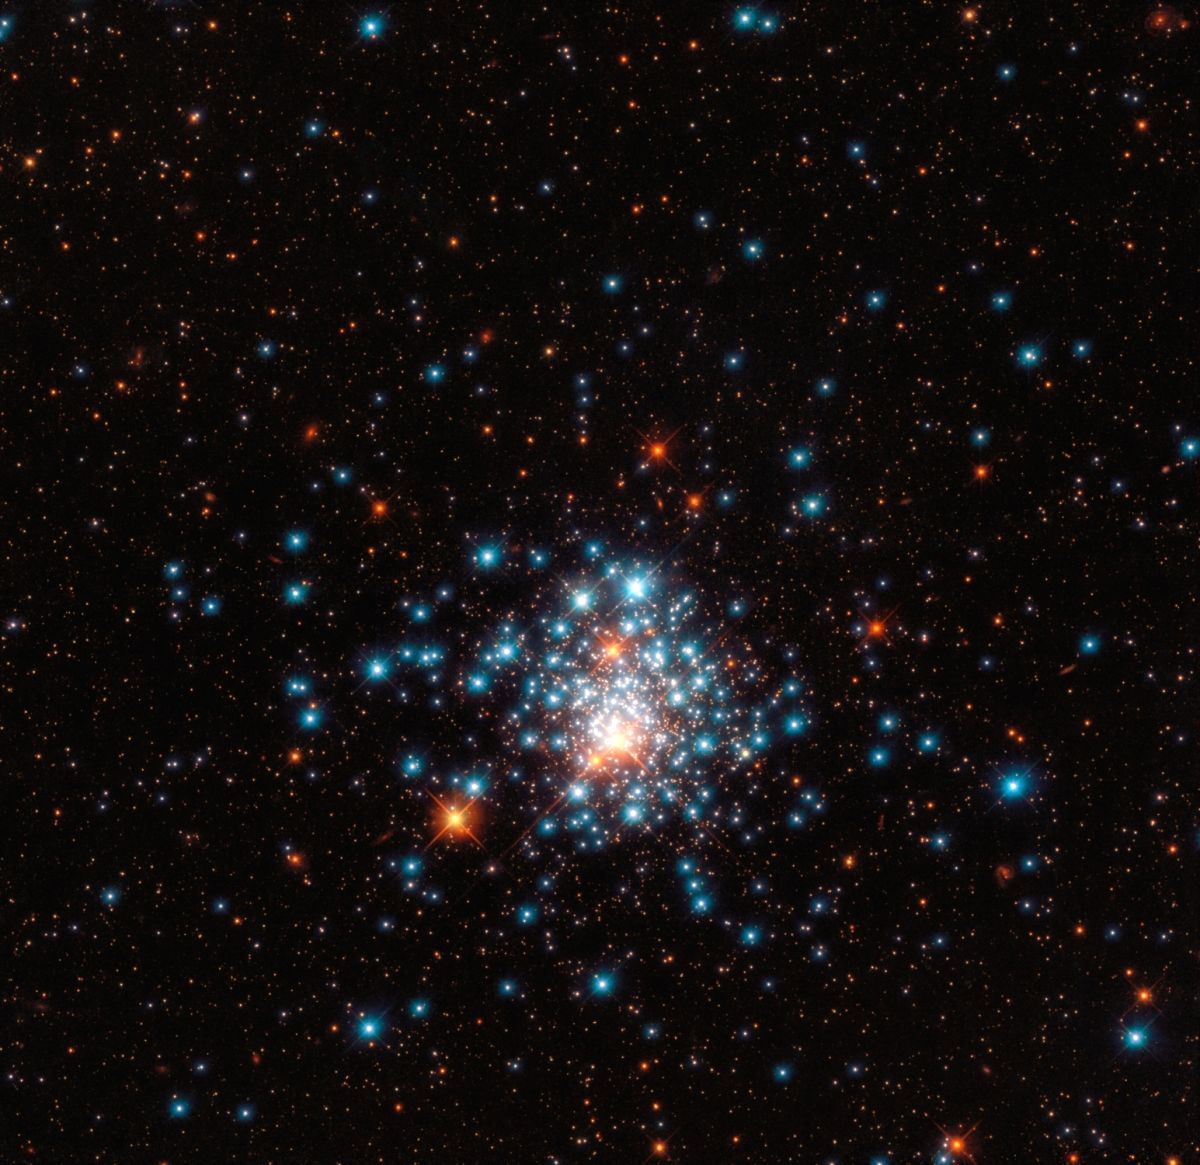 Many colorful stars are packed close together in this image of the globular cluster NGC 1805, taken by the Hubble Space Telescope. (Photo Courtesy: ESA/Hubble & NASA, J. Kalirai)